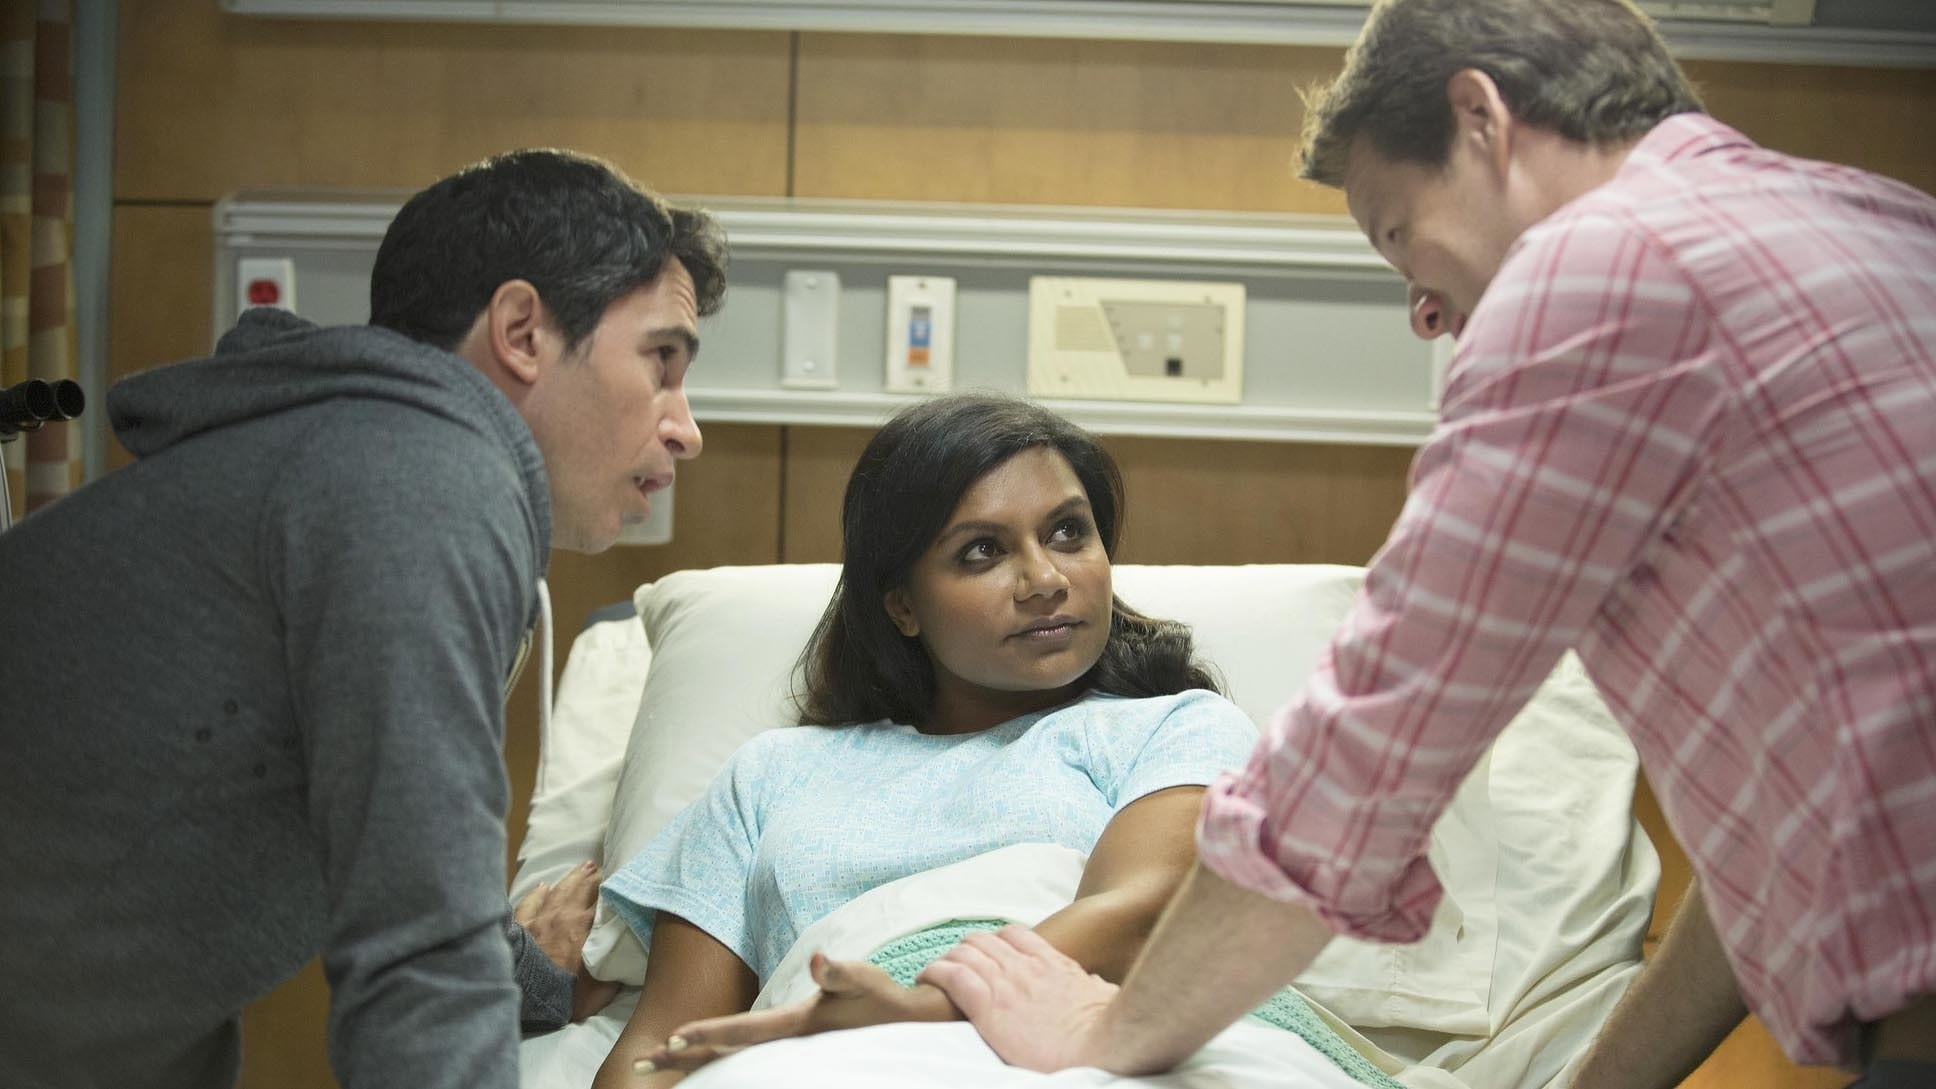 Watch The Mindy Project Online: How to Stream Full Episodes